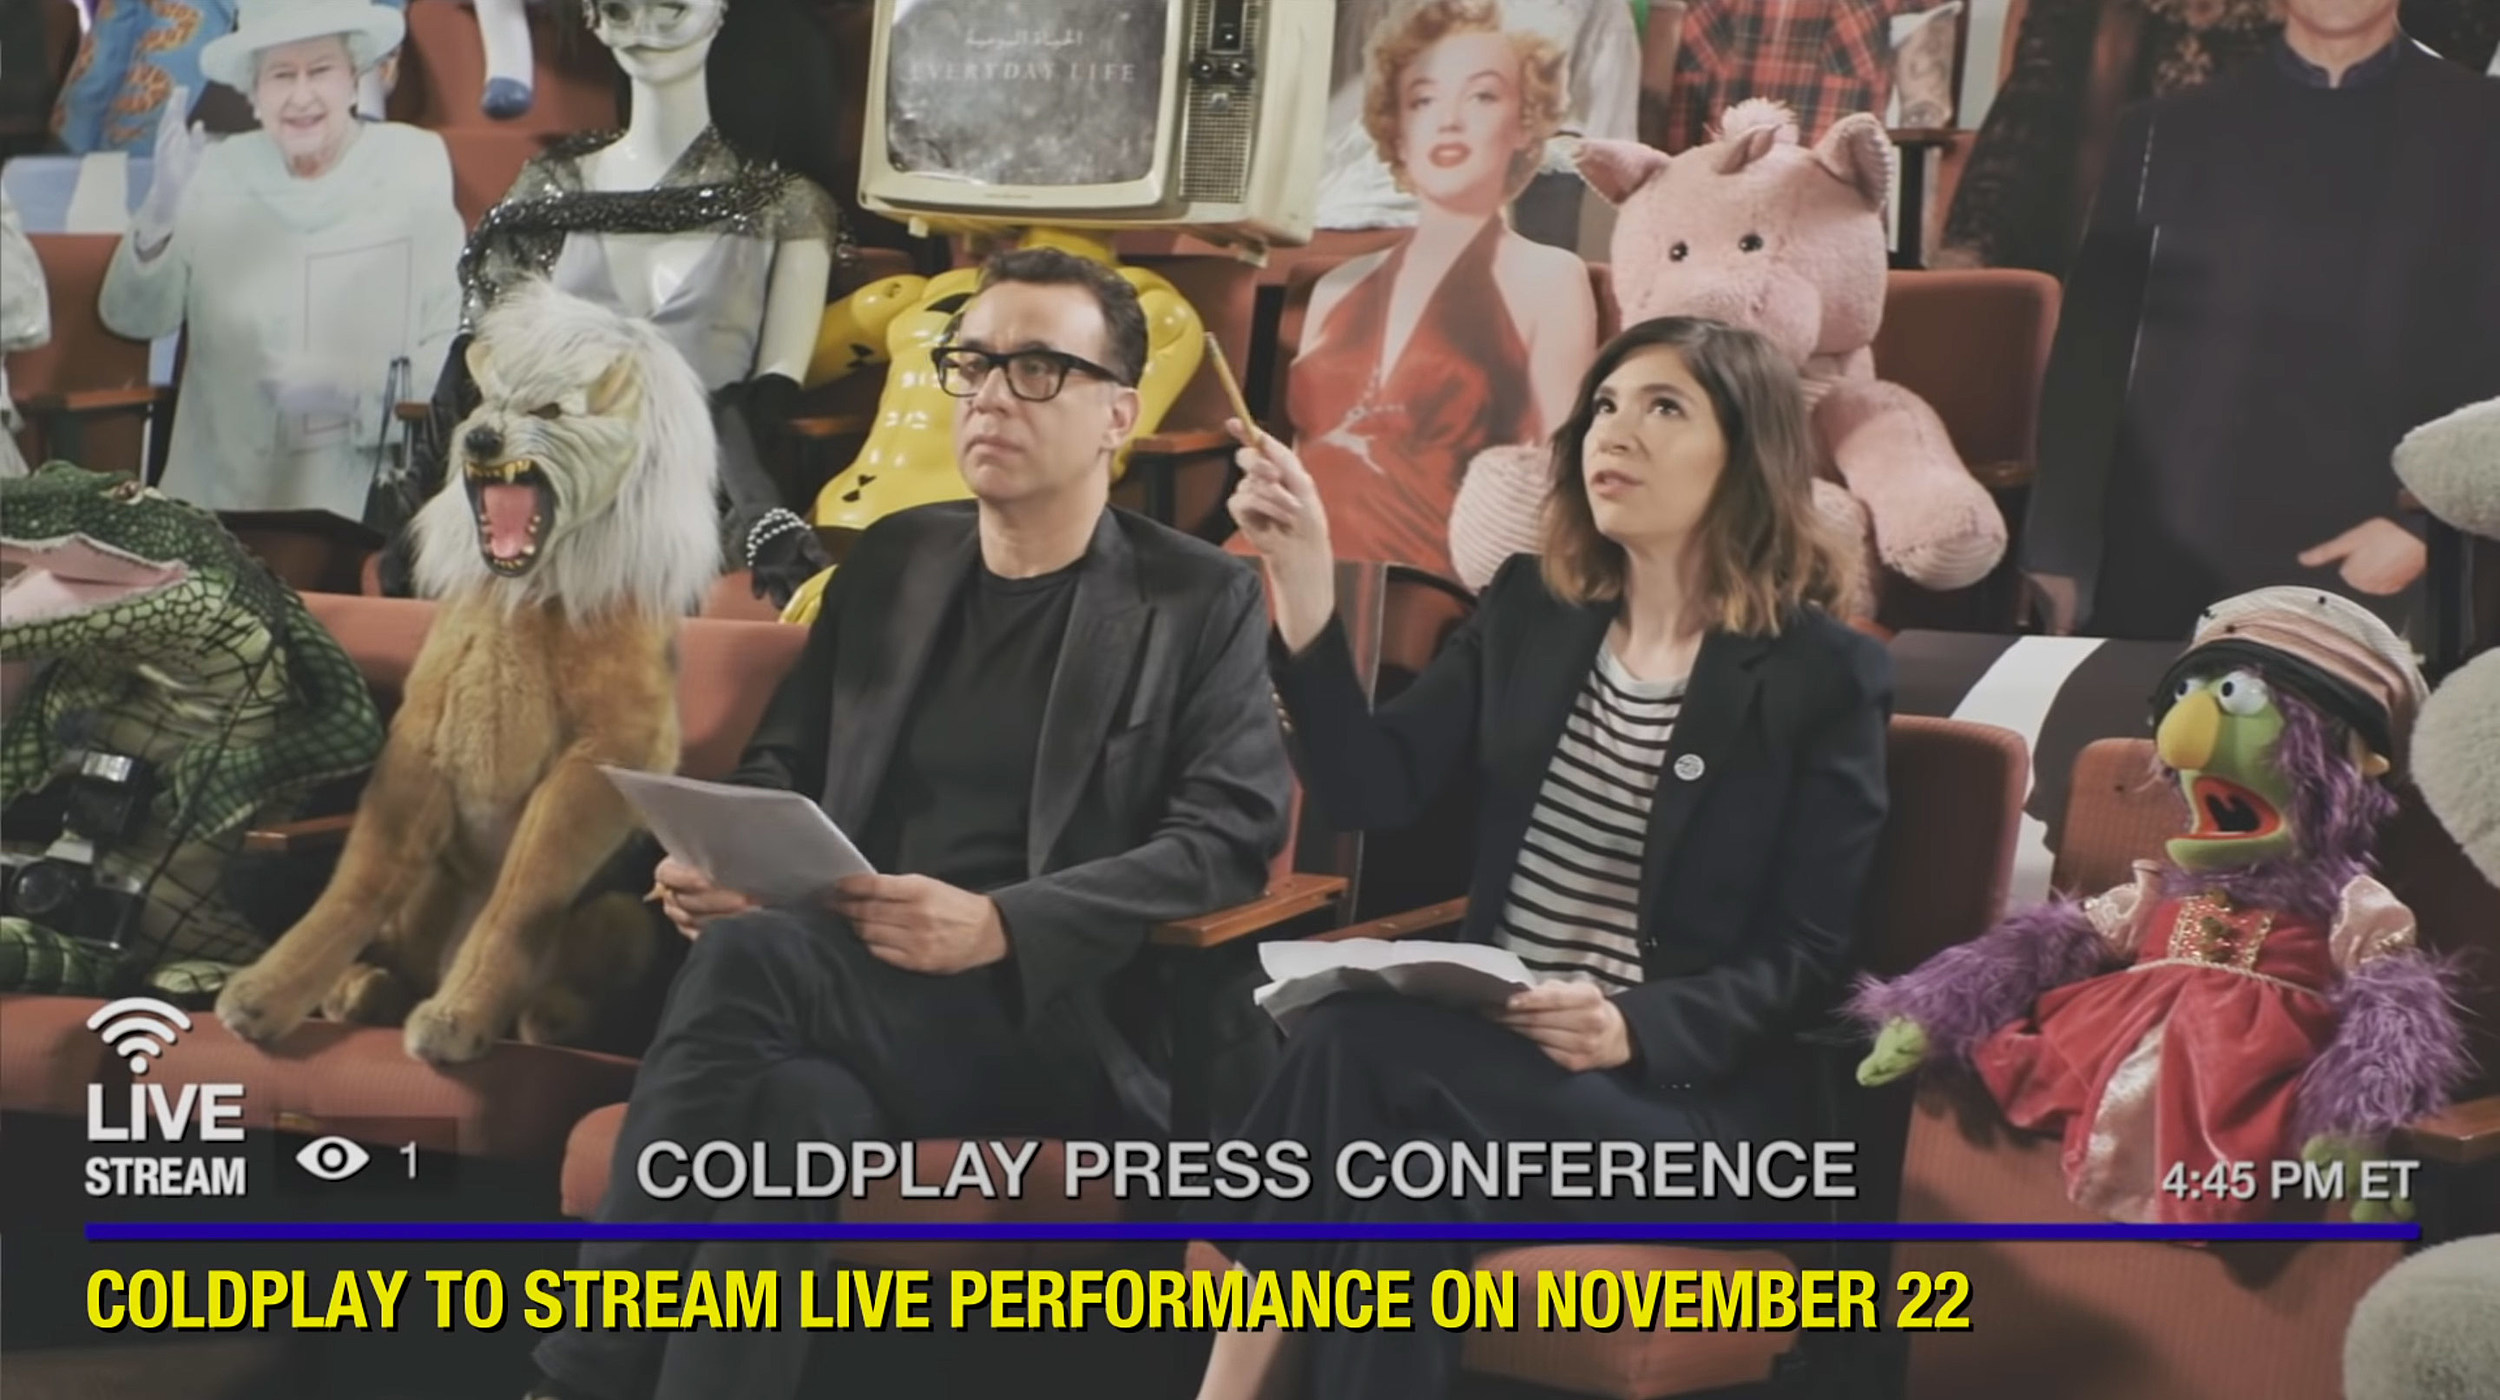 Coldplay Press Conference with Carrie Brownstein and Fred Armisen